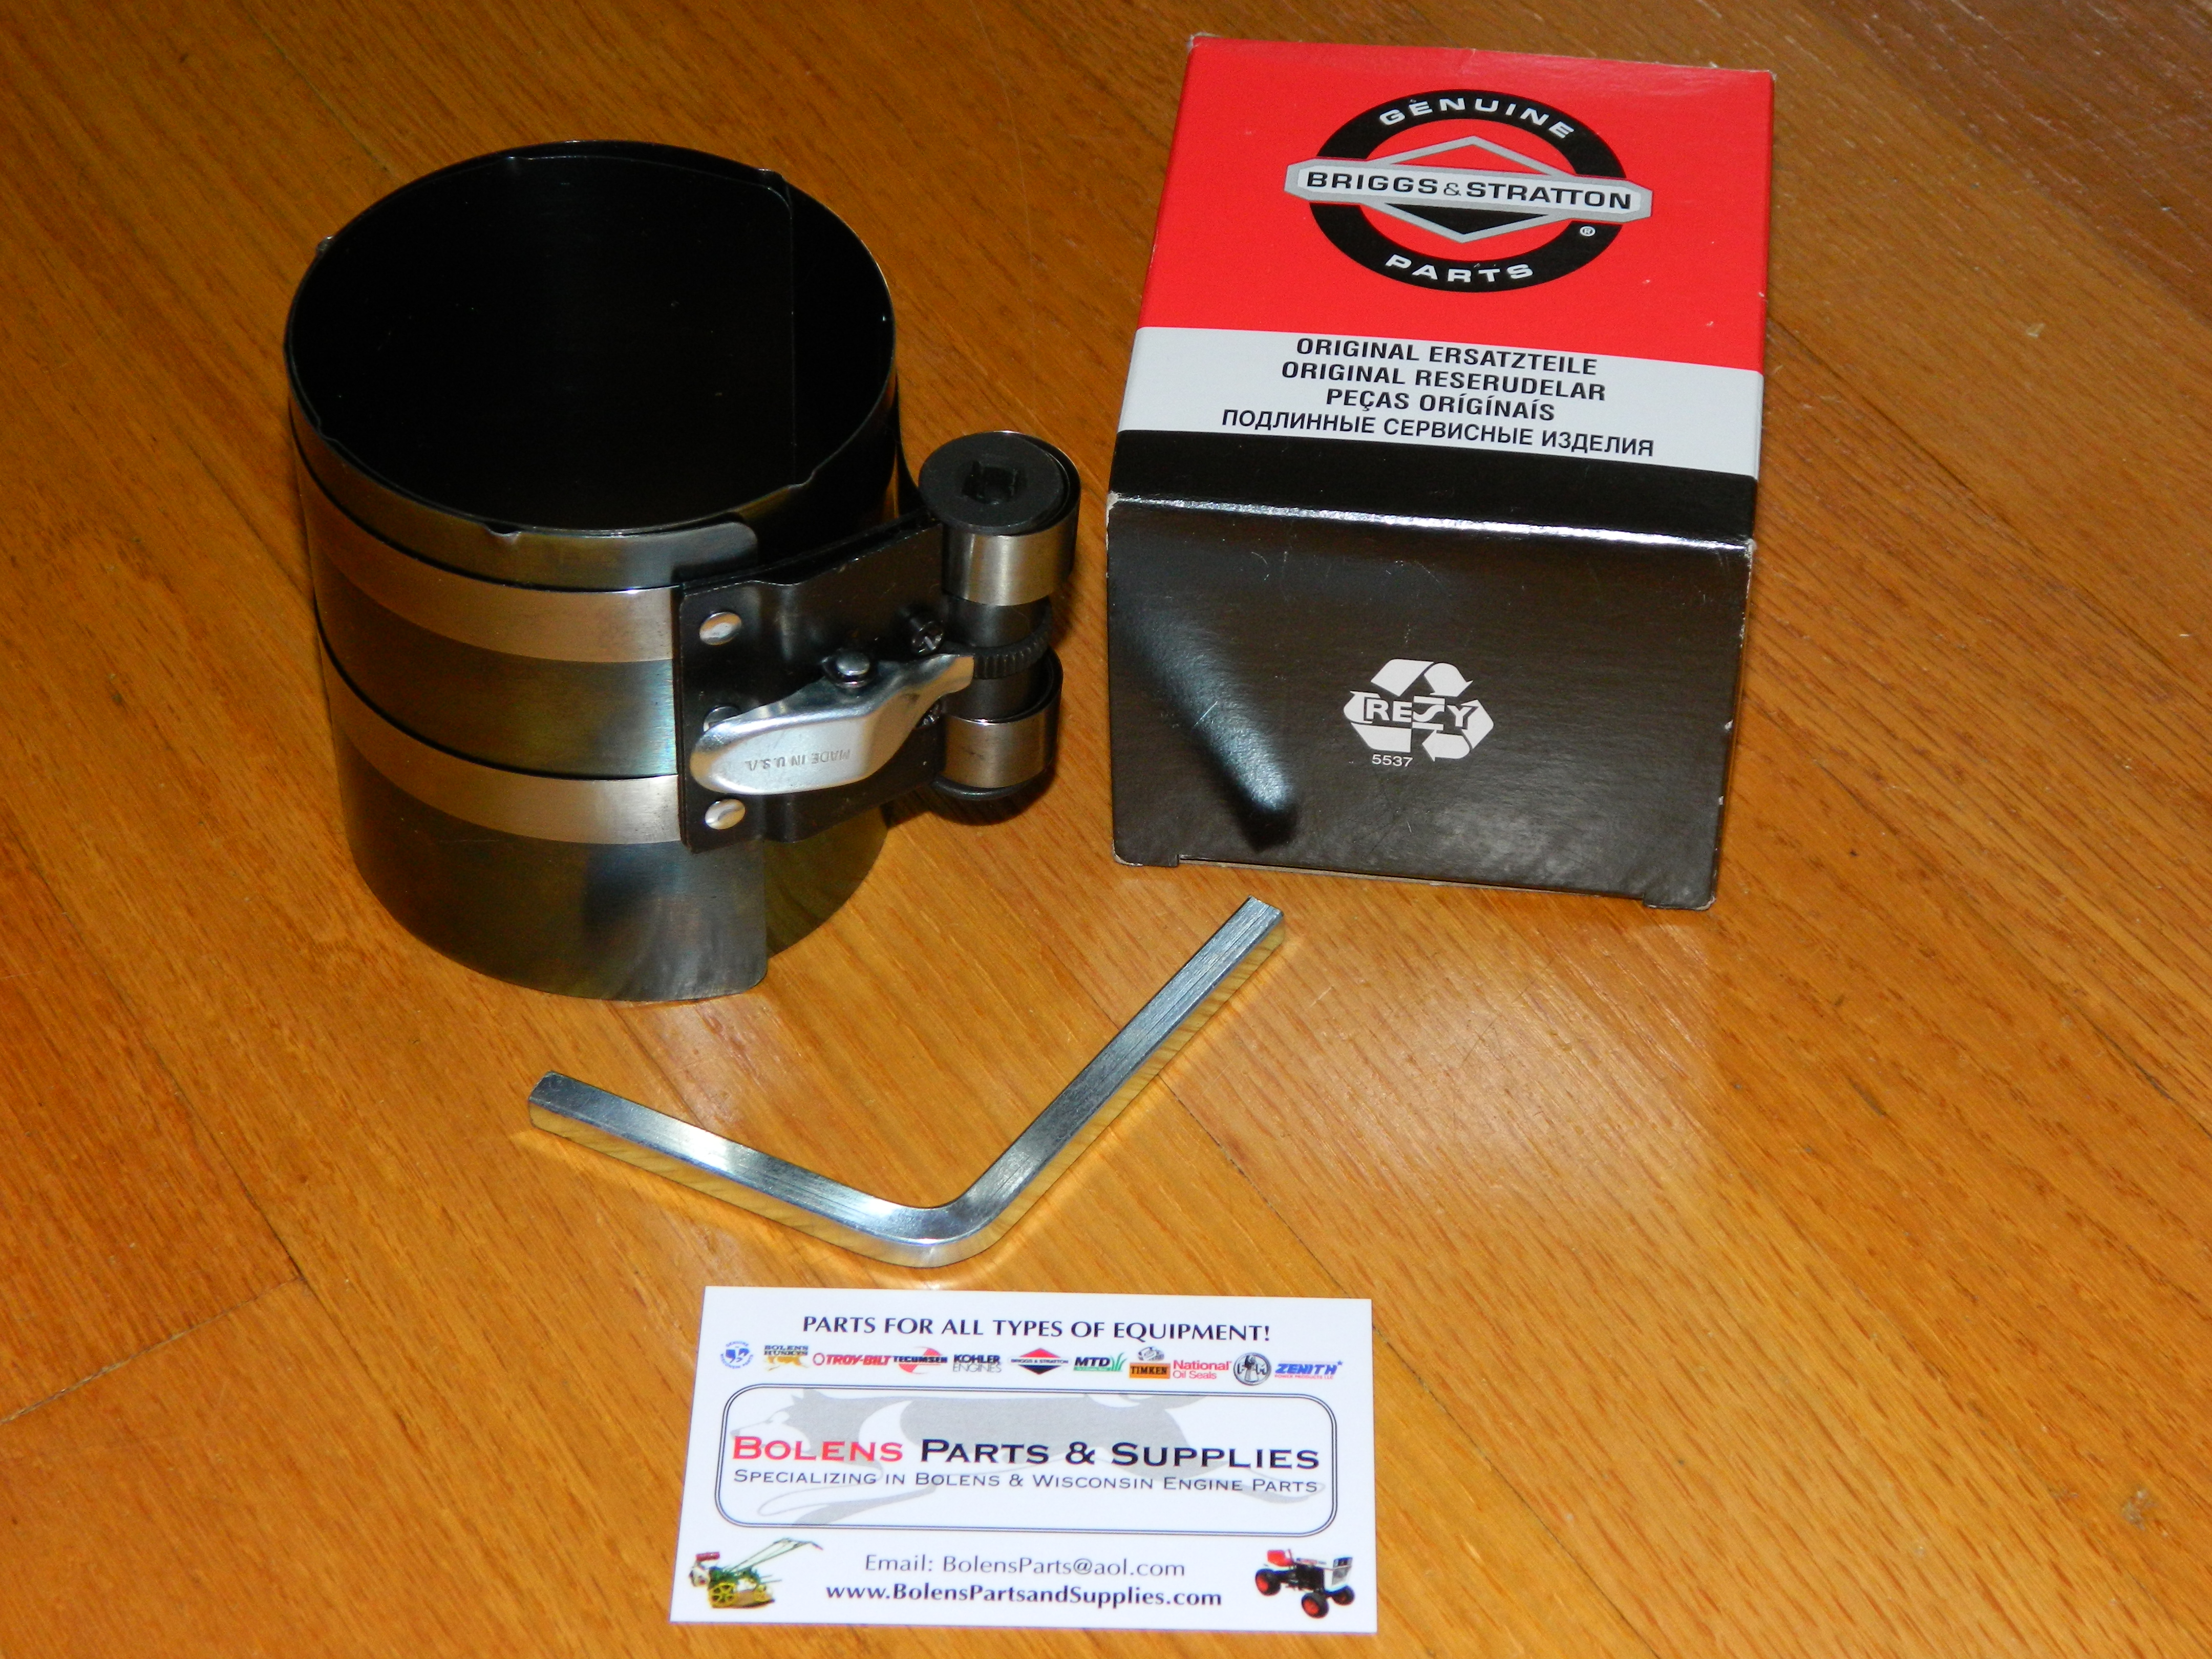 19230 Briggs and Stratton Piston Ring Compressor , fits Kohler, Wisconsin  and more